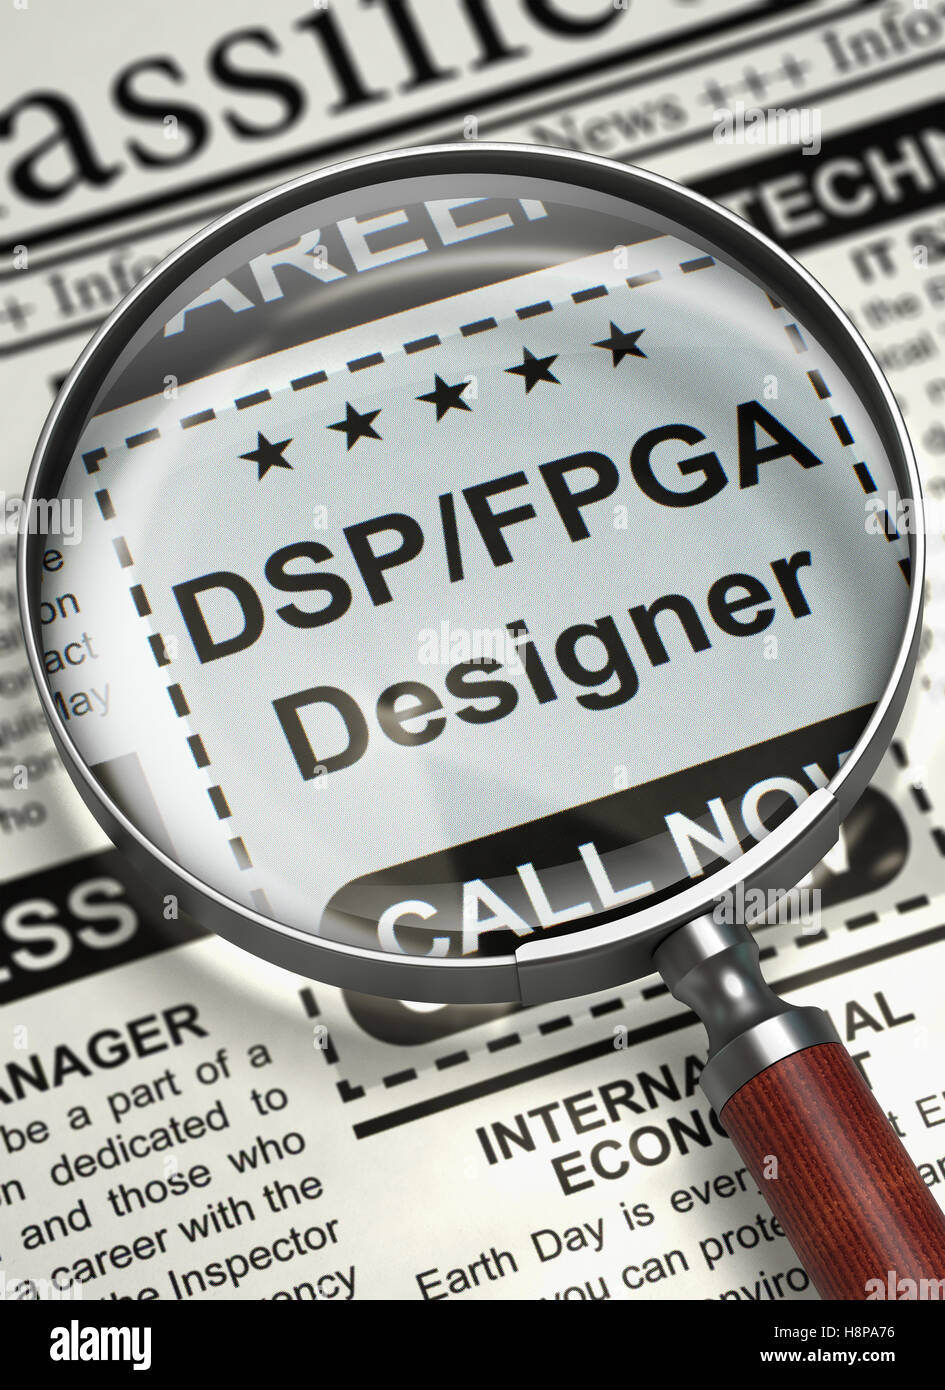 Dsp fpga Designer Wanted  3D Stock Photo: 125880810 - Alamy